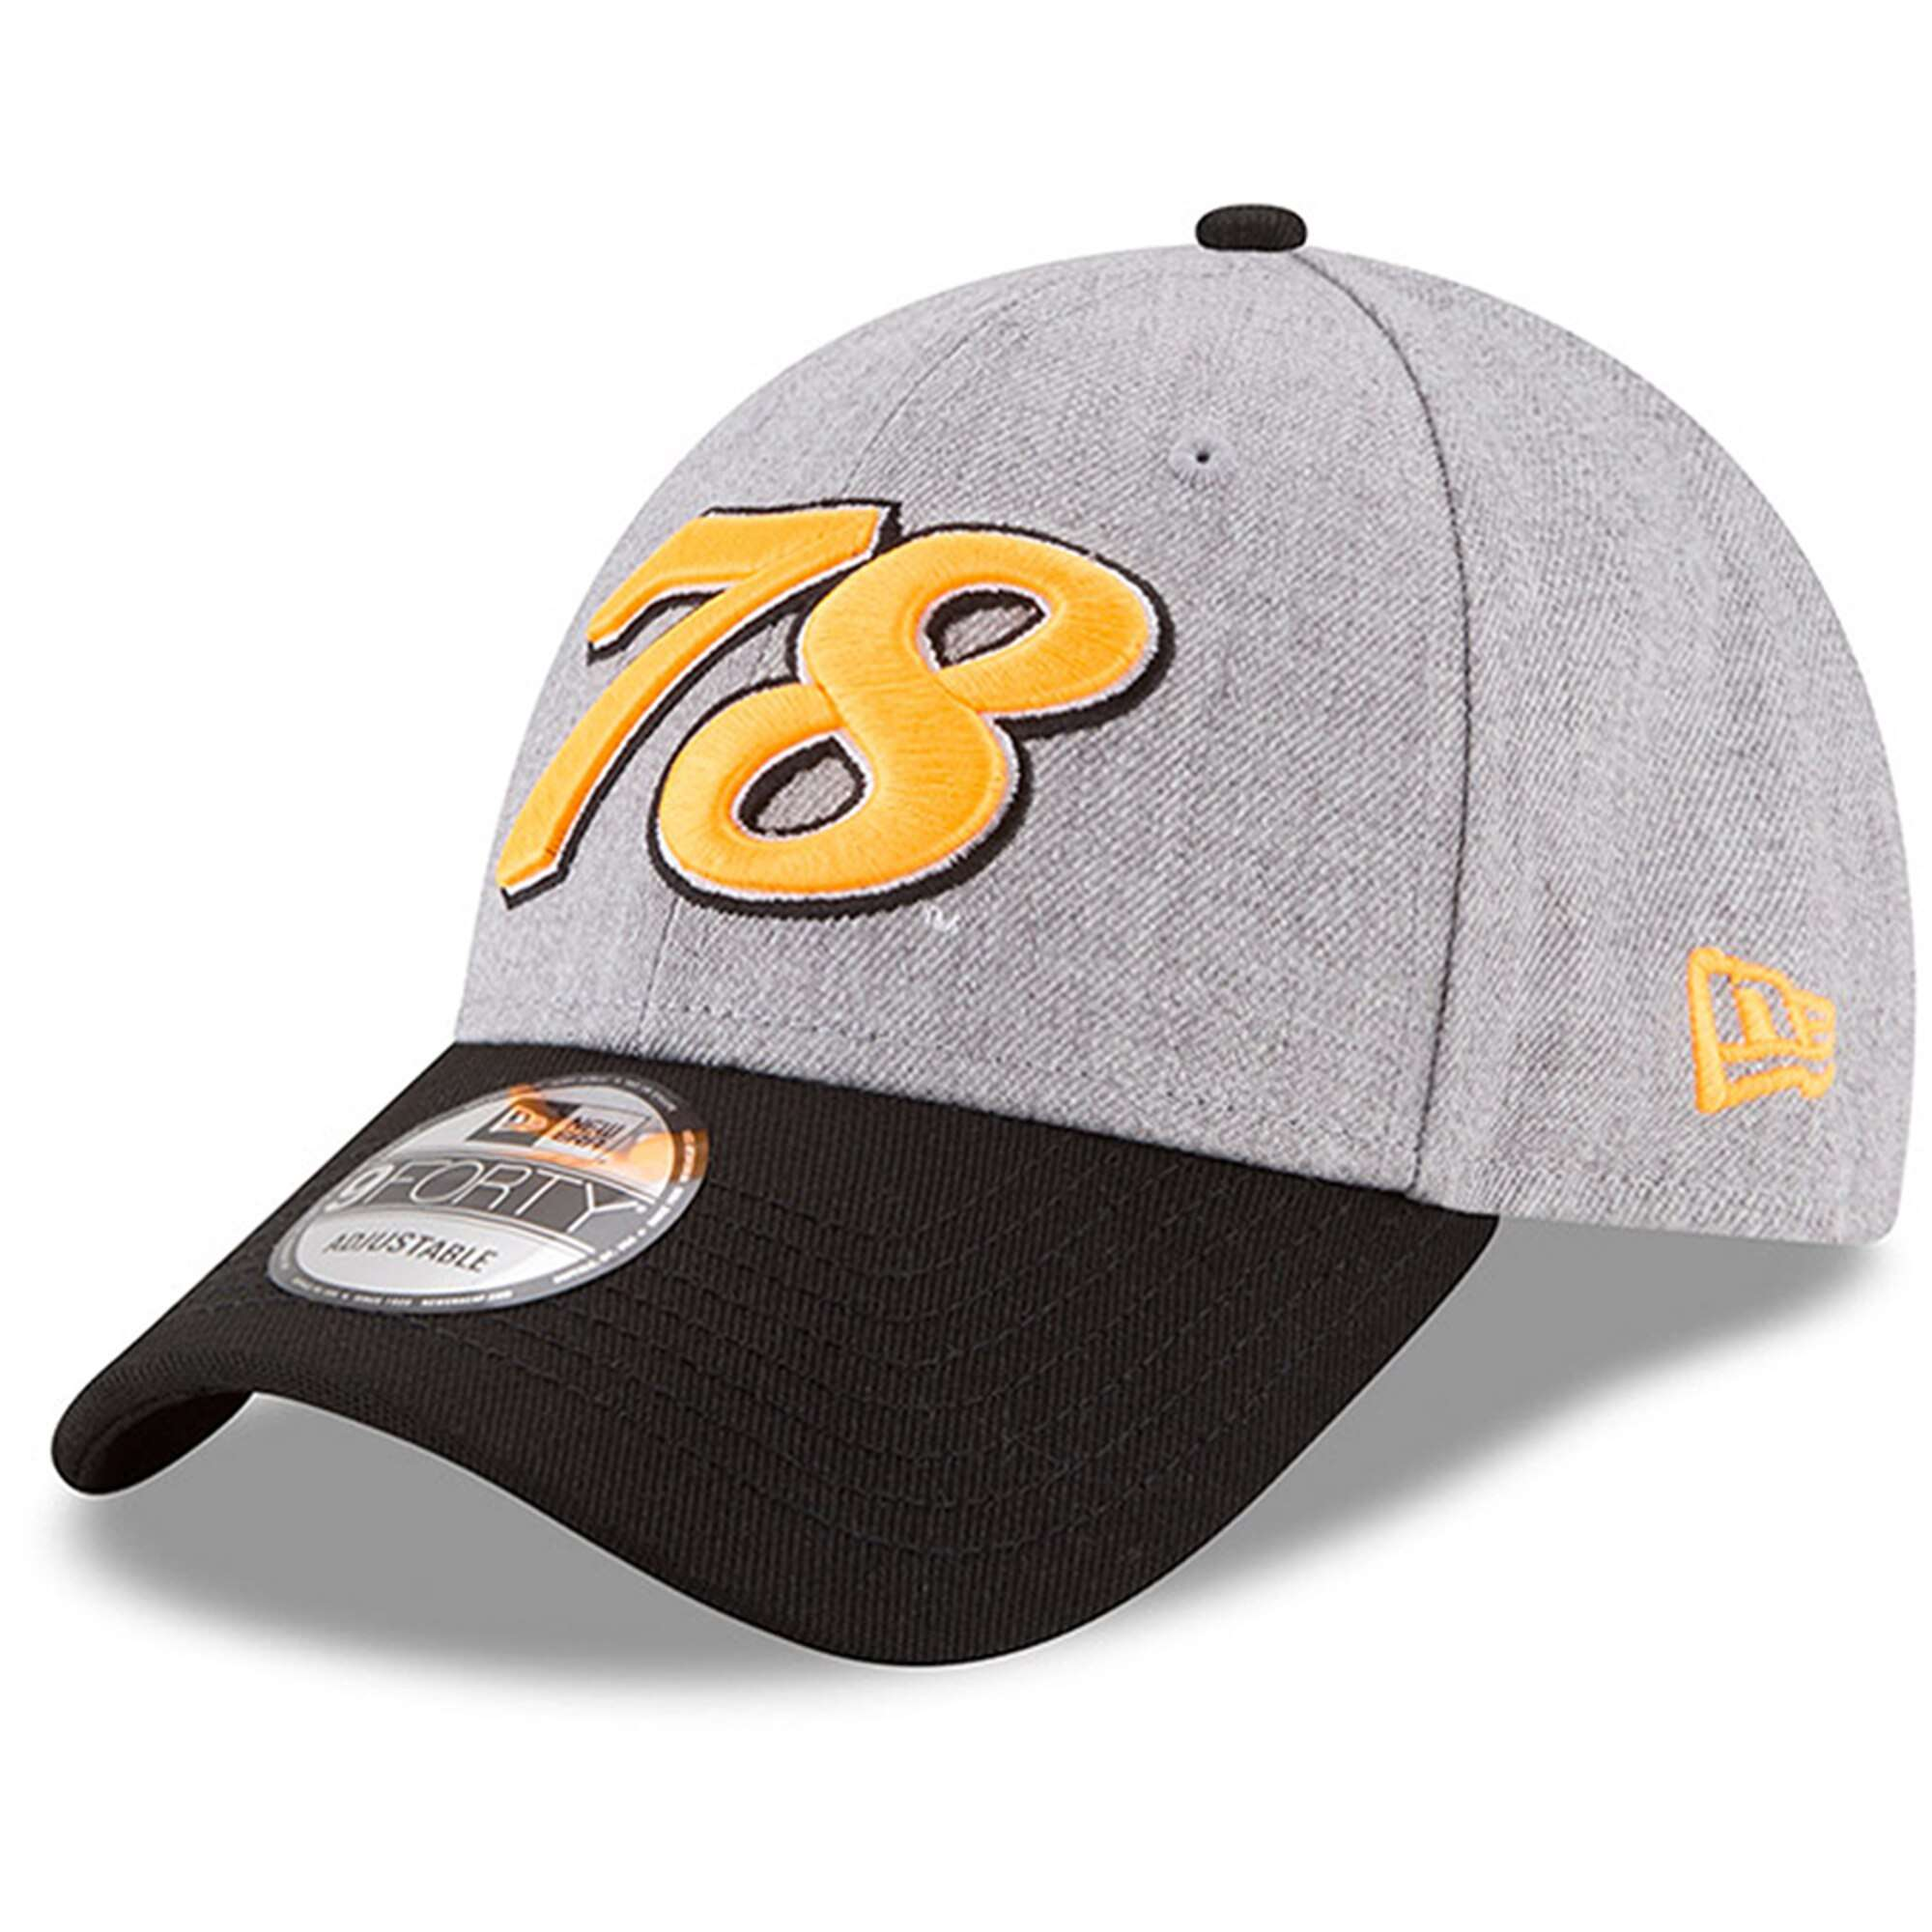 Hat: Nascar - Martin Truex Jr Heather Gray/Black Driver Number 9FORTY Photo